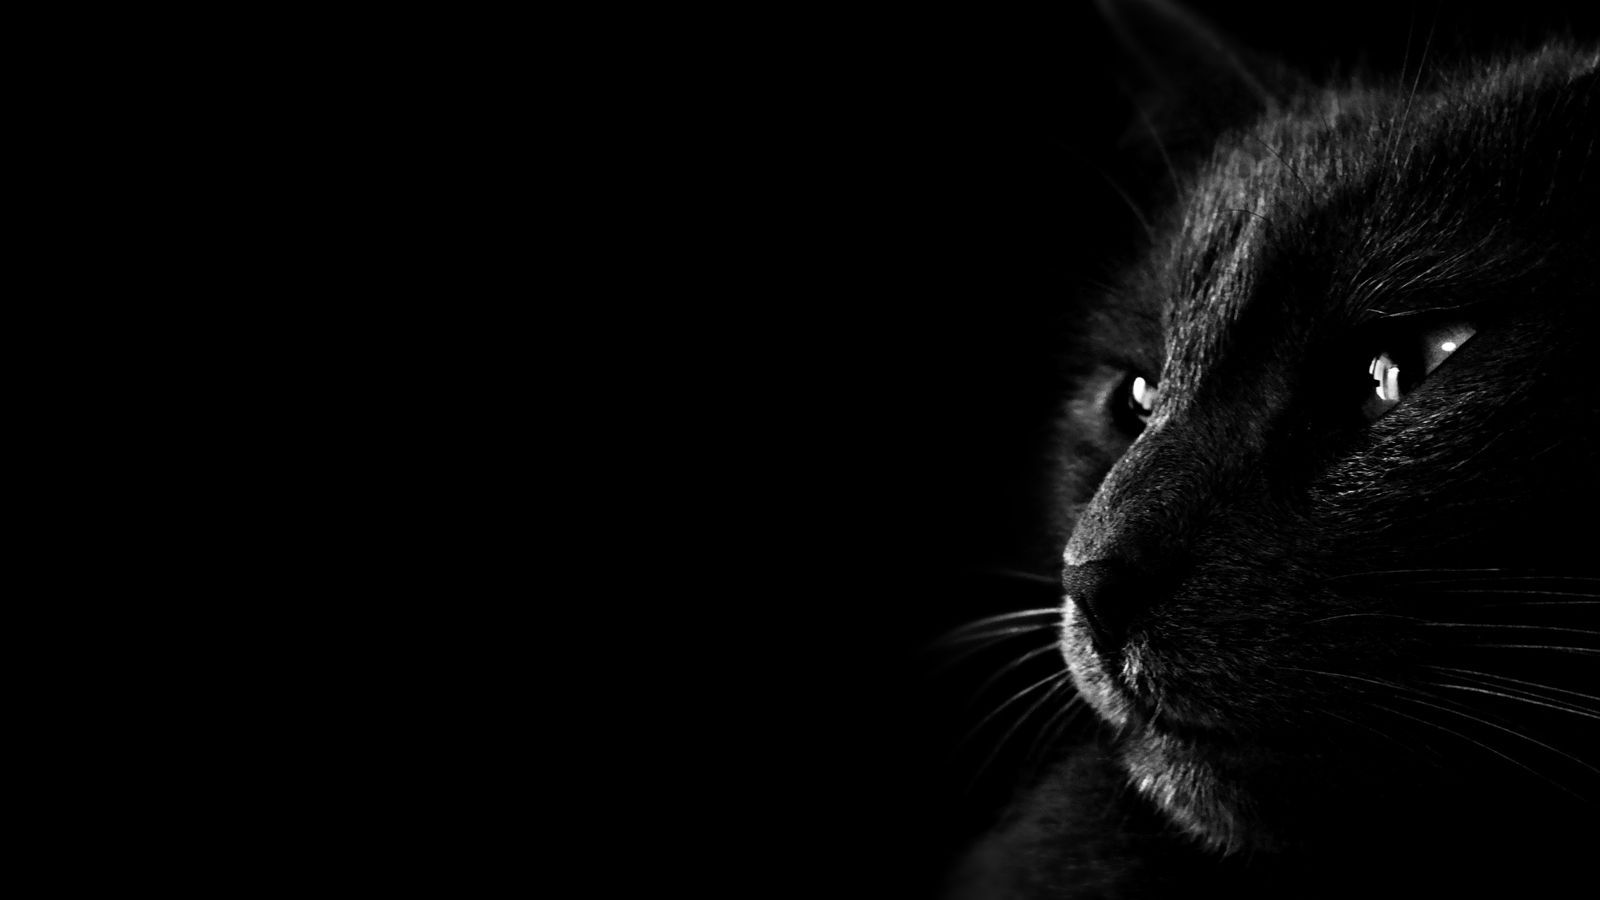 Cat Dark Wallpaper Best Wallpaper Hd Black Cat Images Black Hd Wallpaper Dark Wallpaper